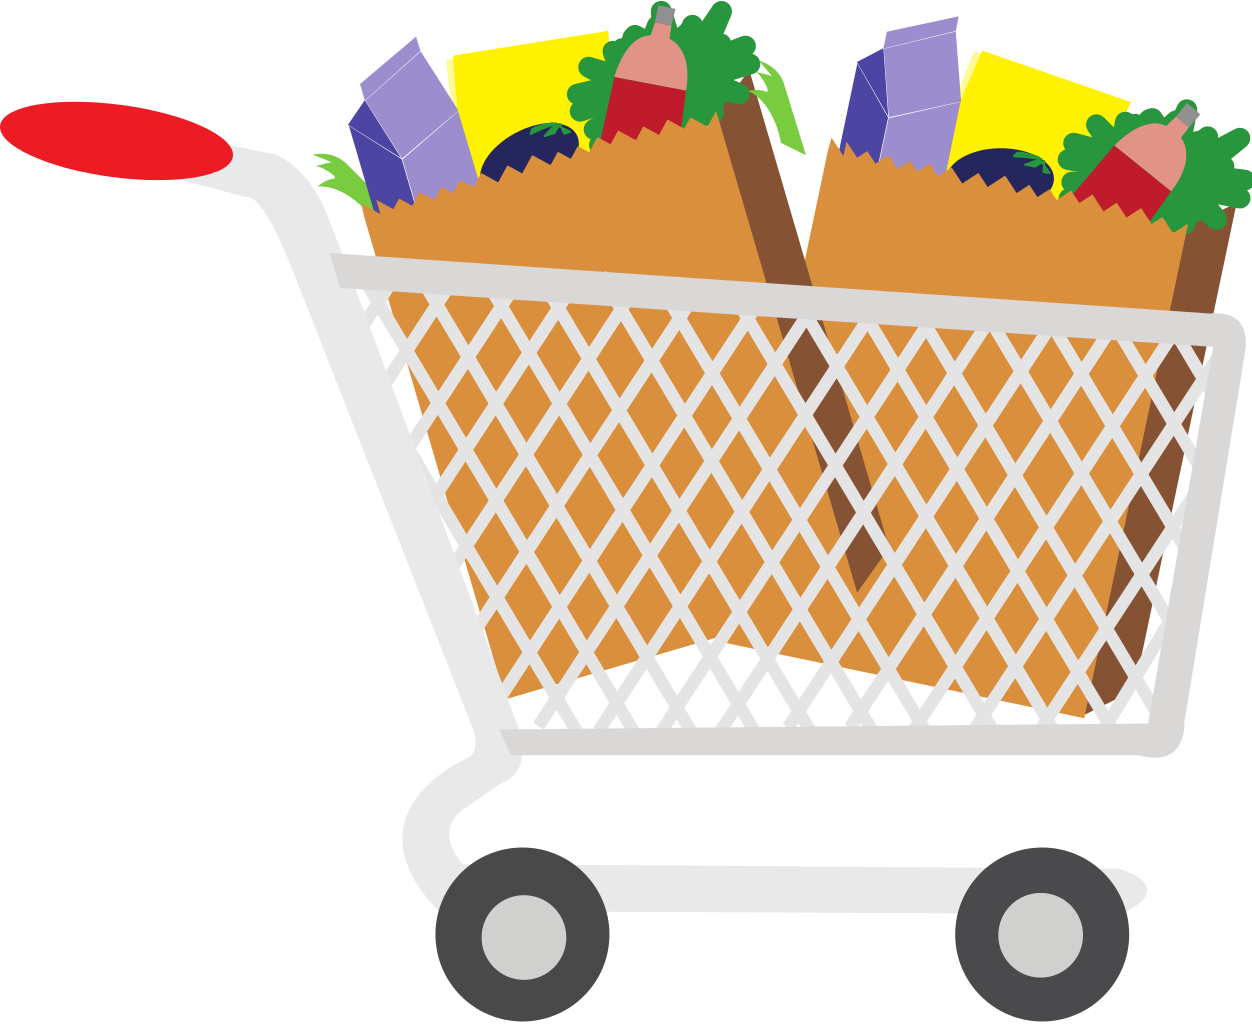 Bag clipart grocery basket Art grocery%20clipart Clipart Groceries Images